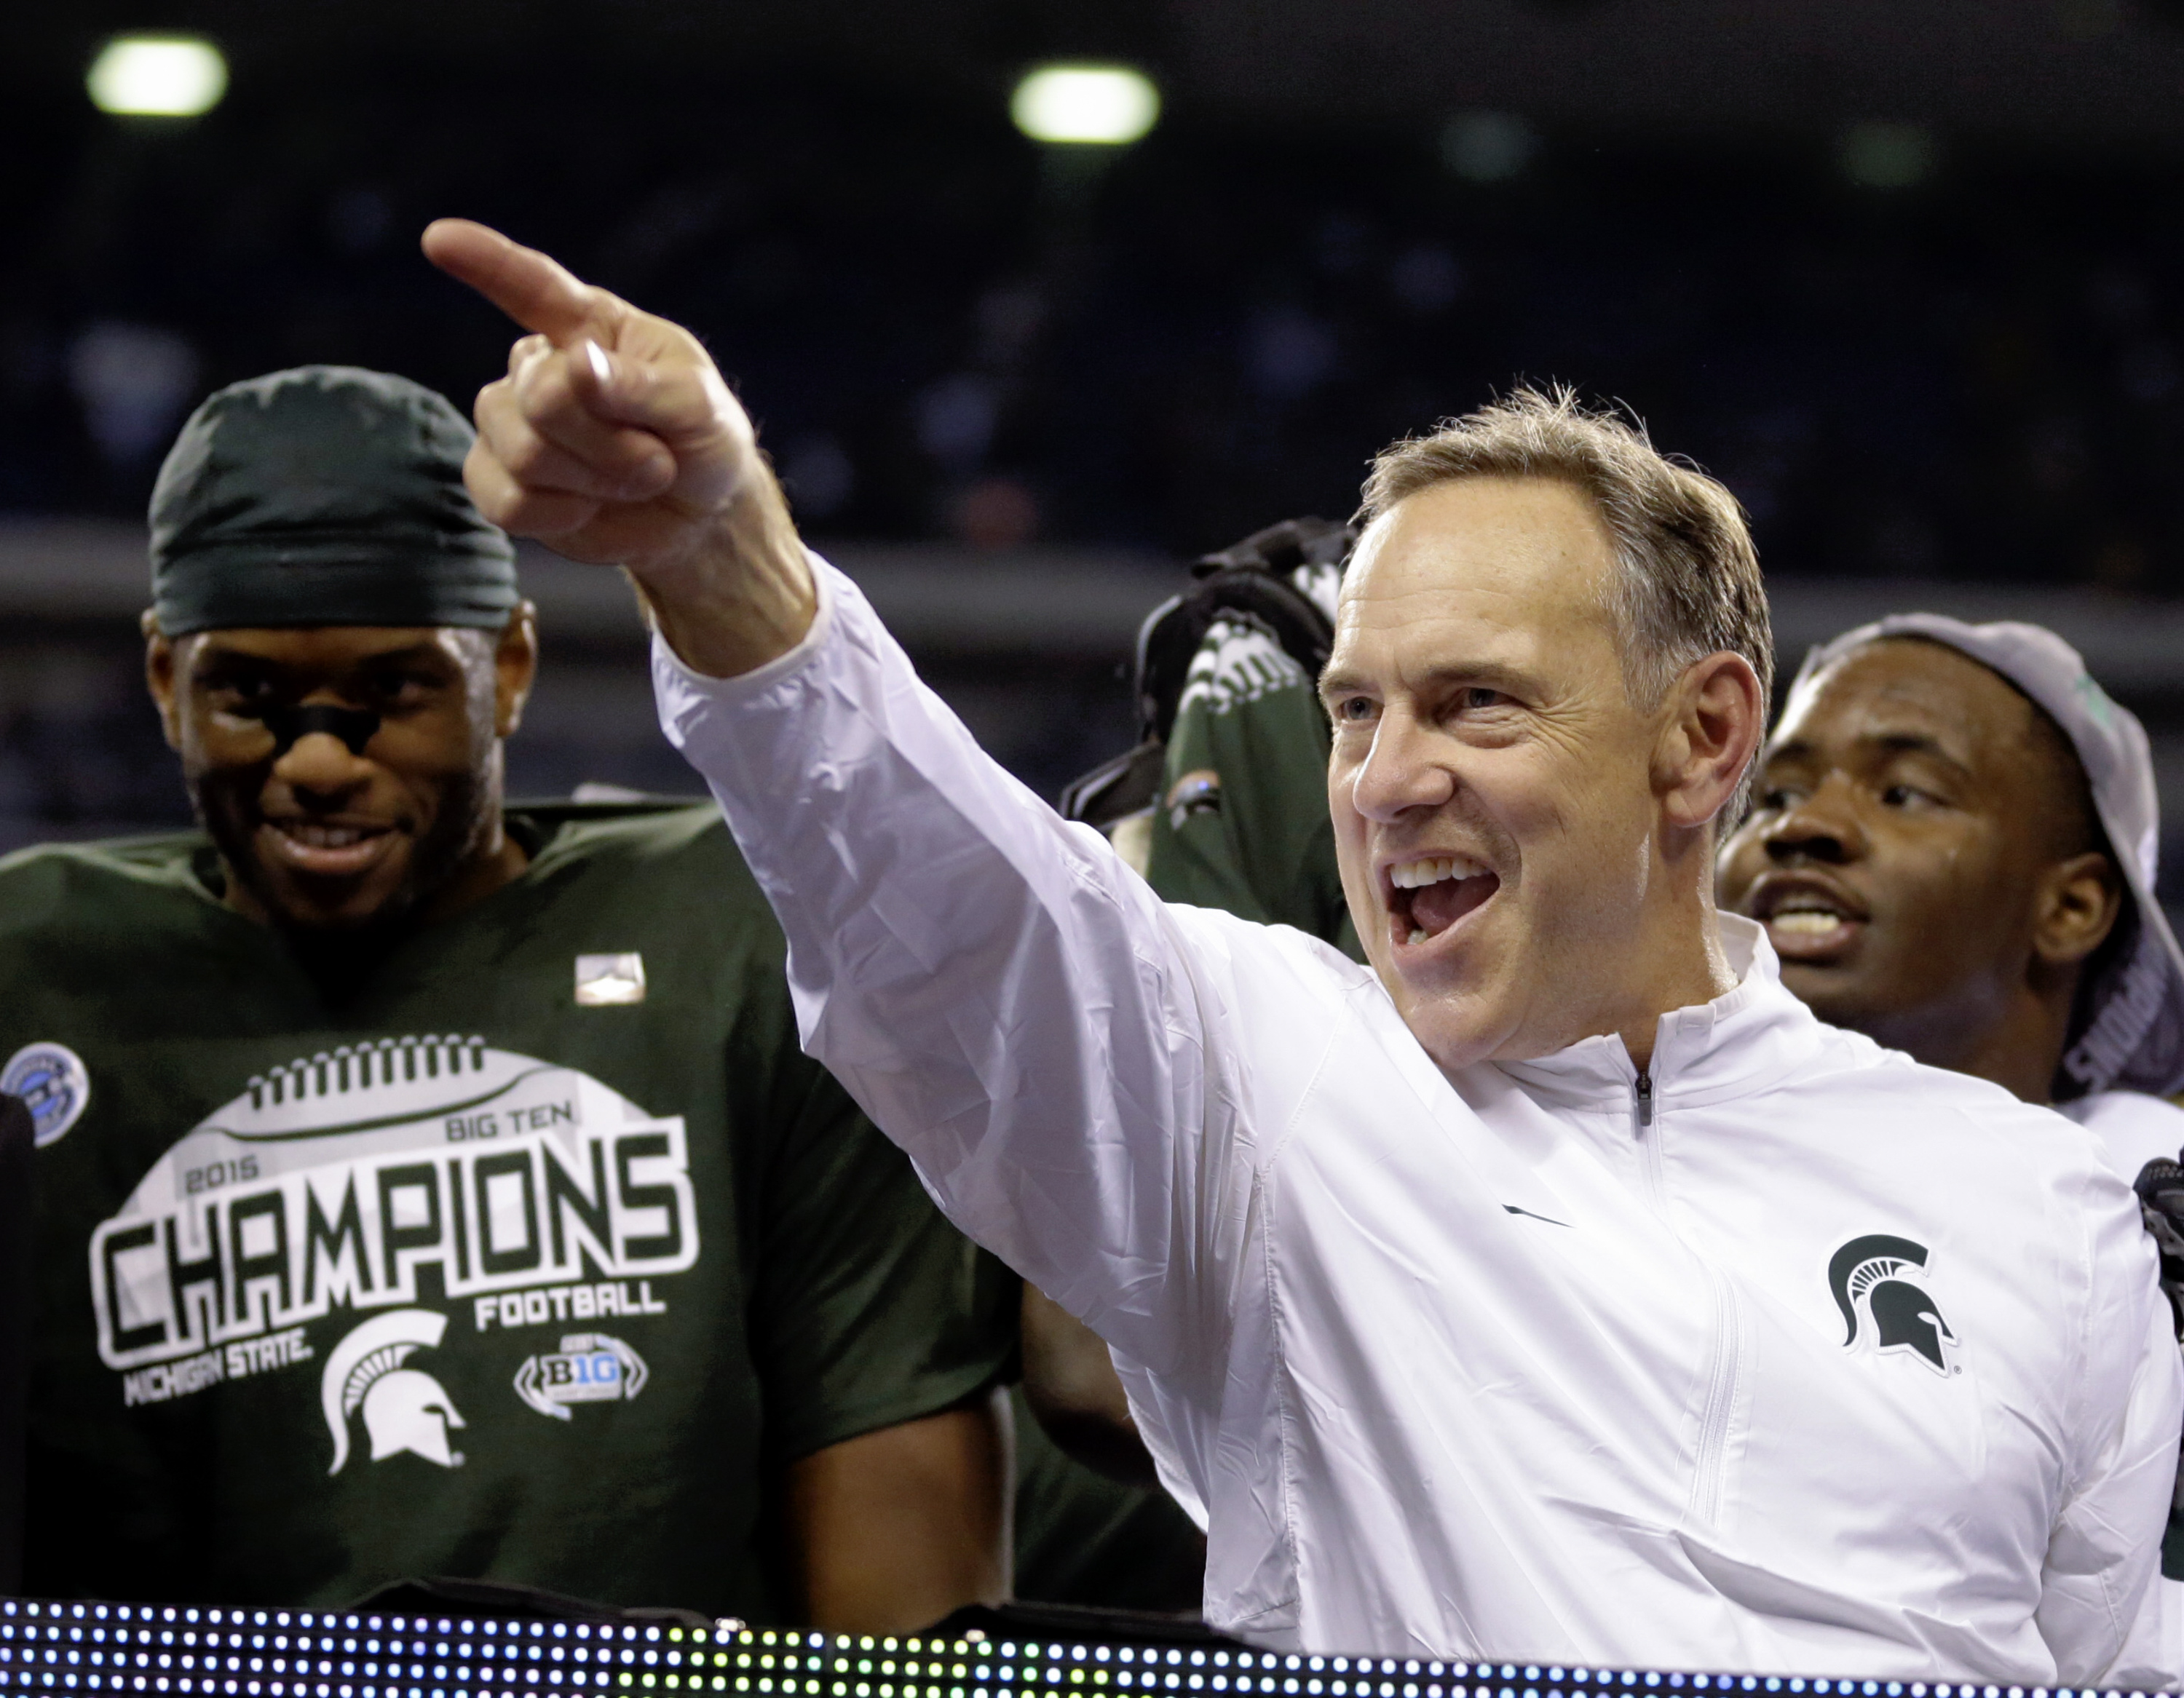 FILE -  In this Dec. 5, 2015 file photo, Michigan State coach Mark Dantonio celebrates after Michigan State defeated Iowa 16-13 to win the Big Ten championship NCAA college football game in Indianapolis. Michigan State is trying to win back-to-back Big Te